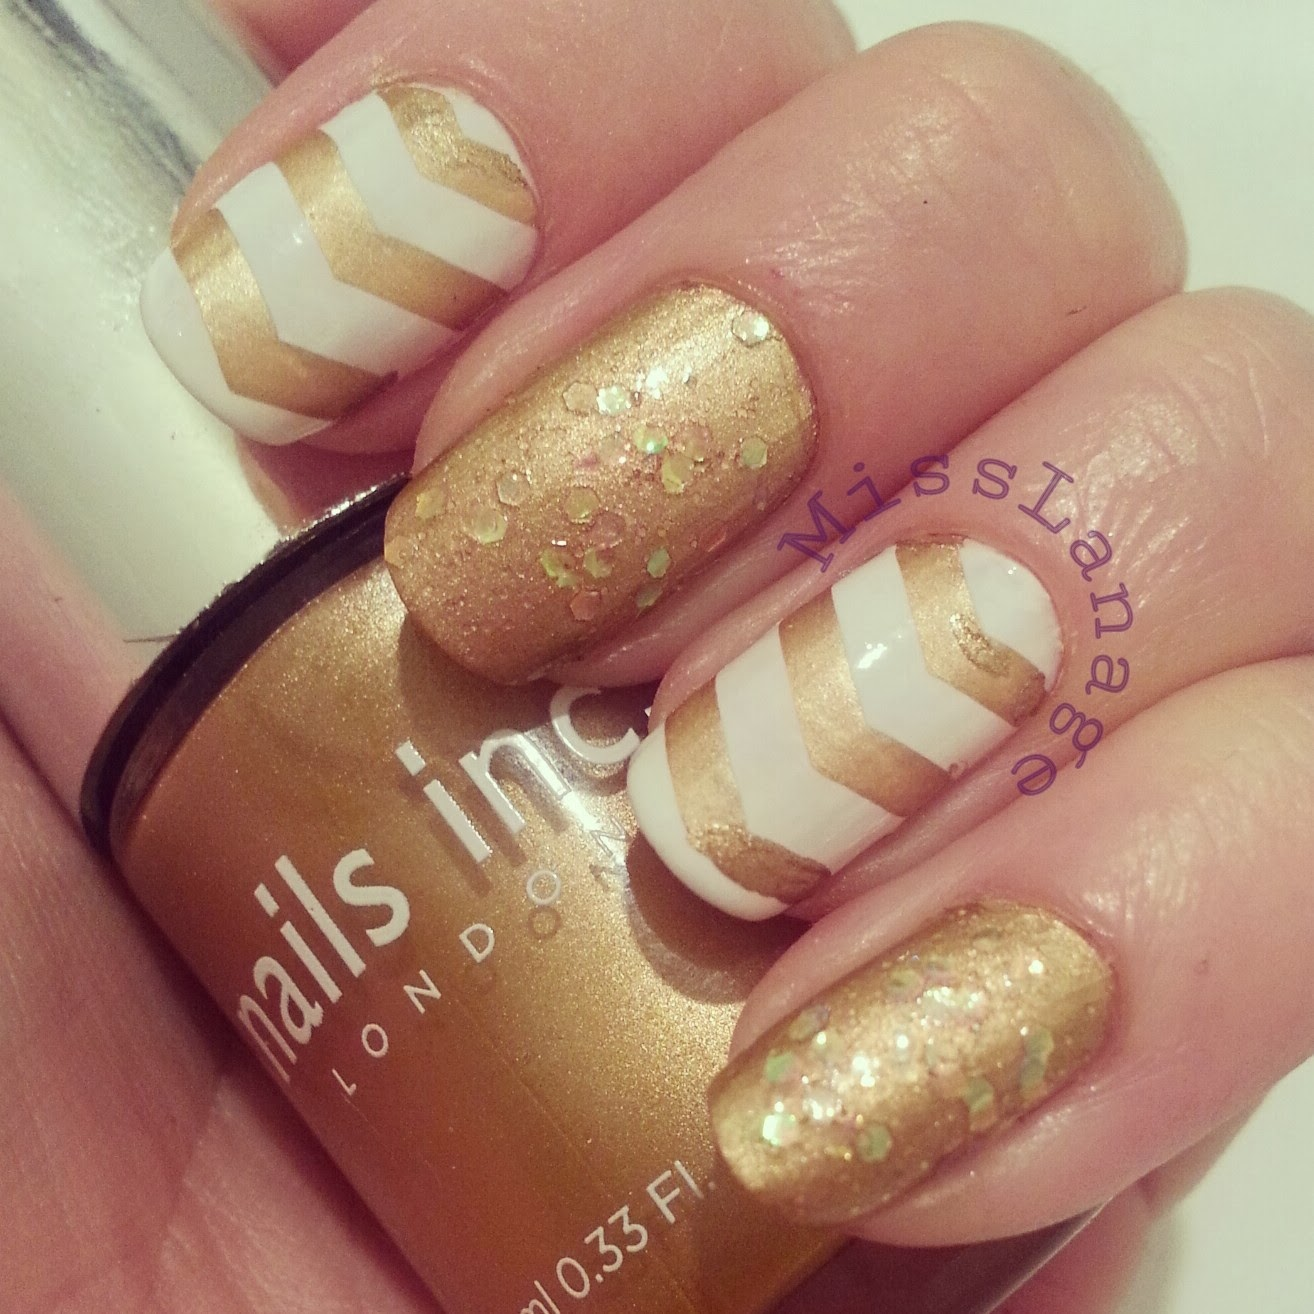 Images of beautiful nail art designs most popular nails photos beautylish images of beautiful nail art designs prinsesfo Image collections